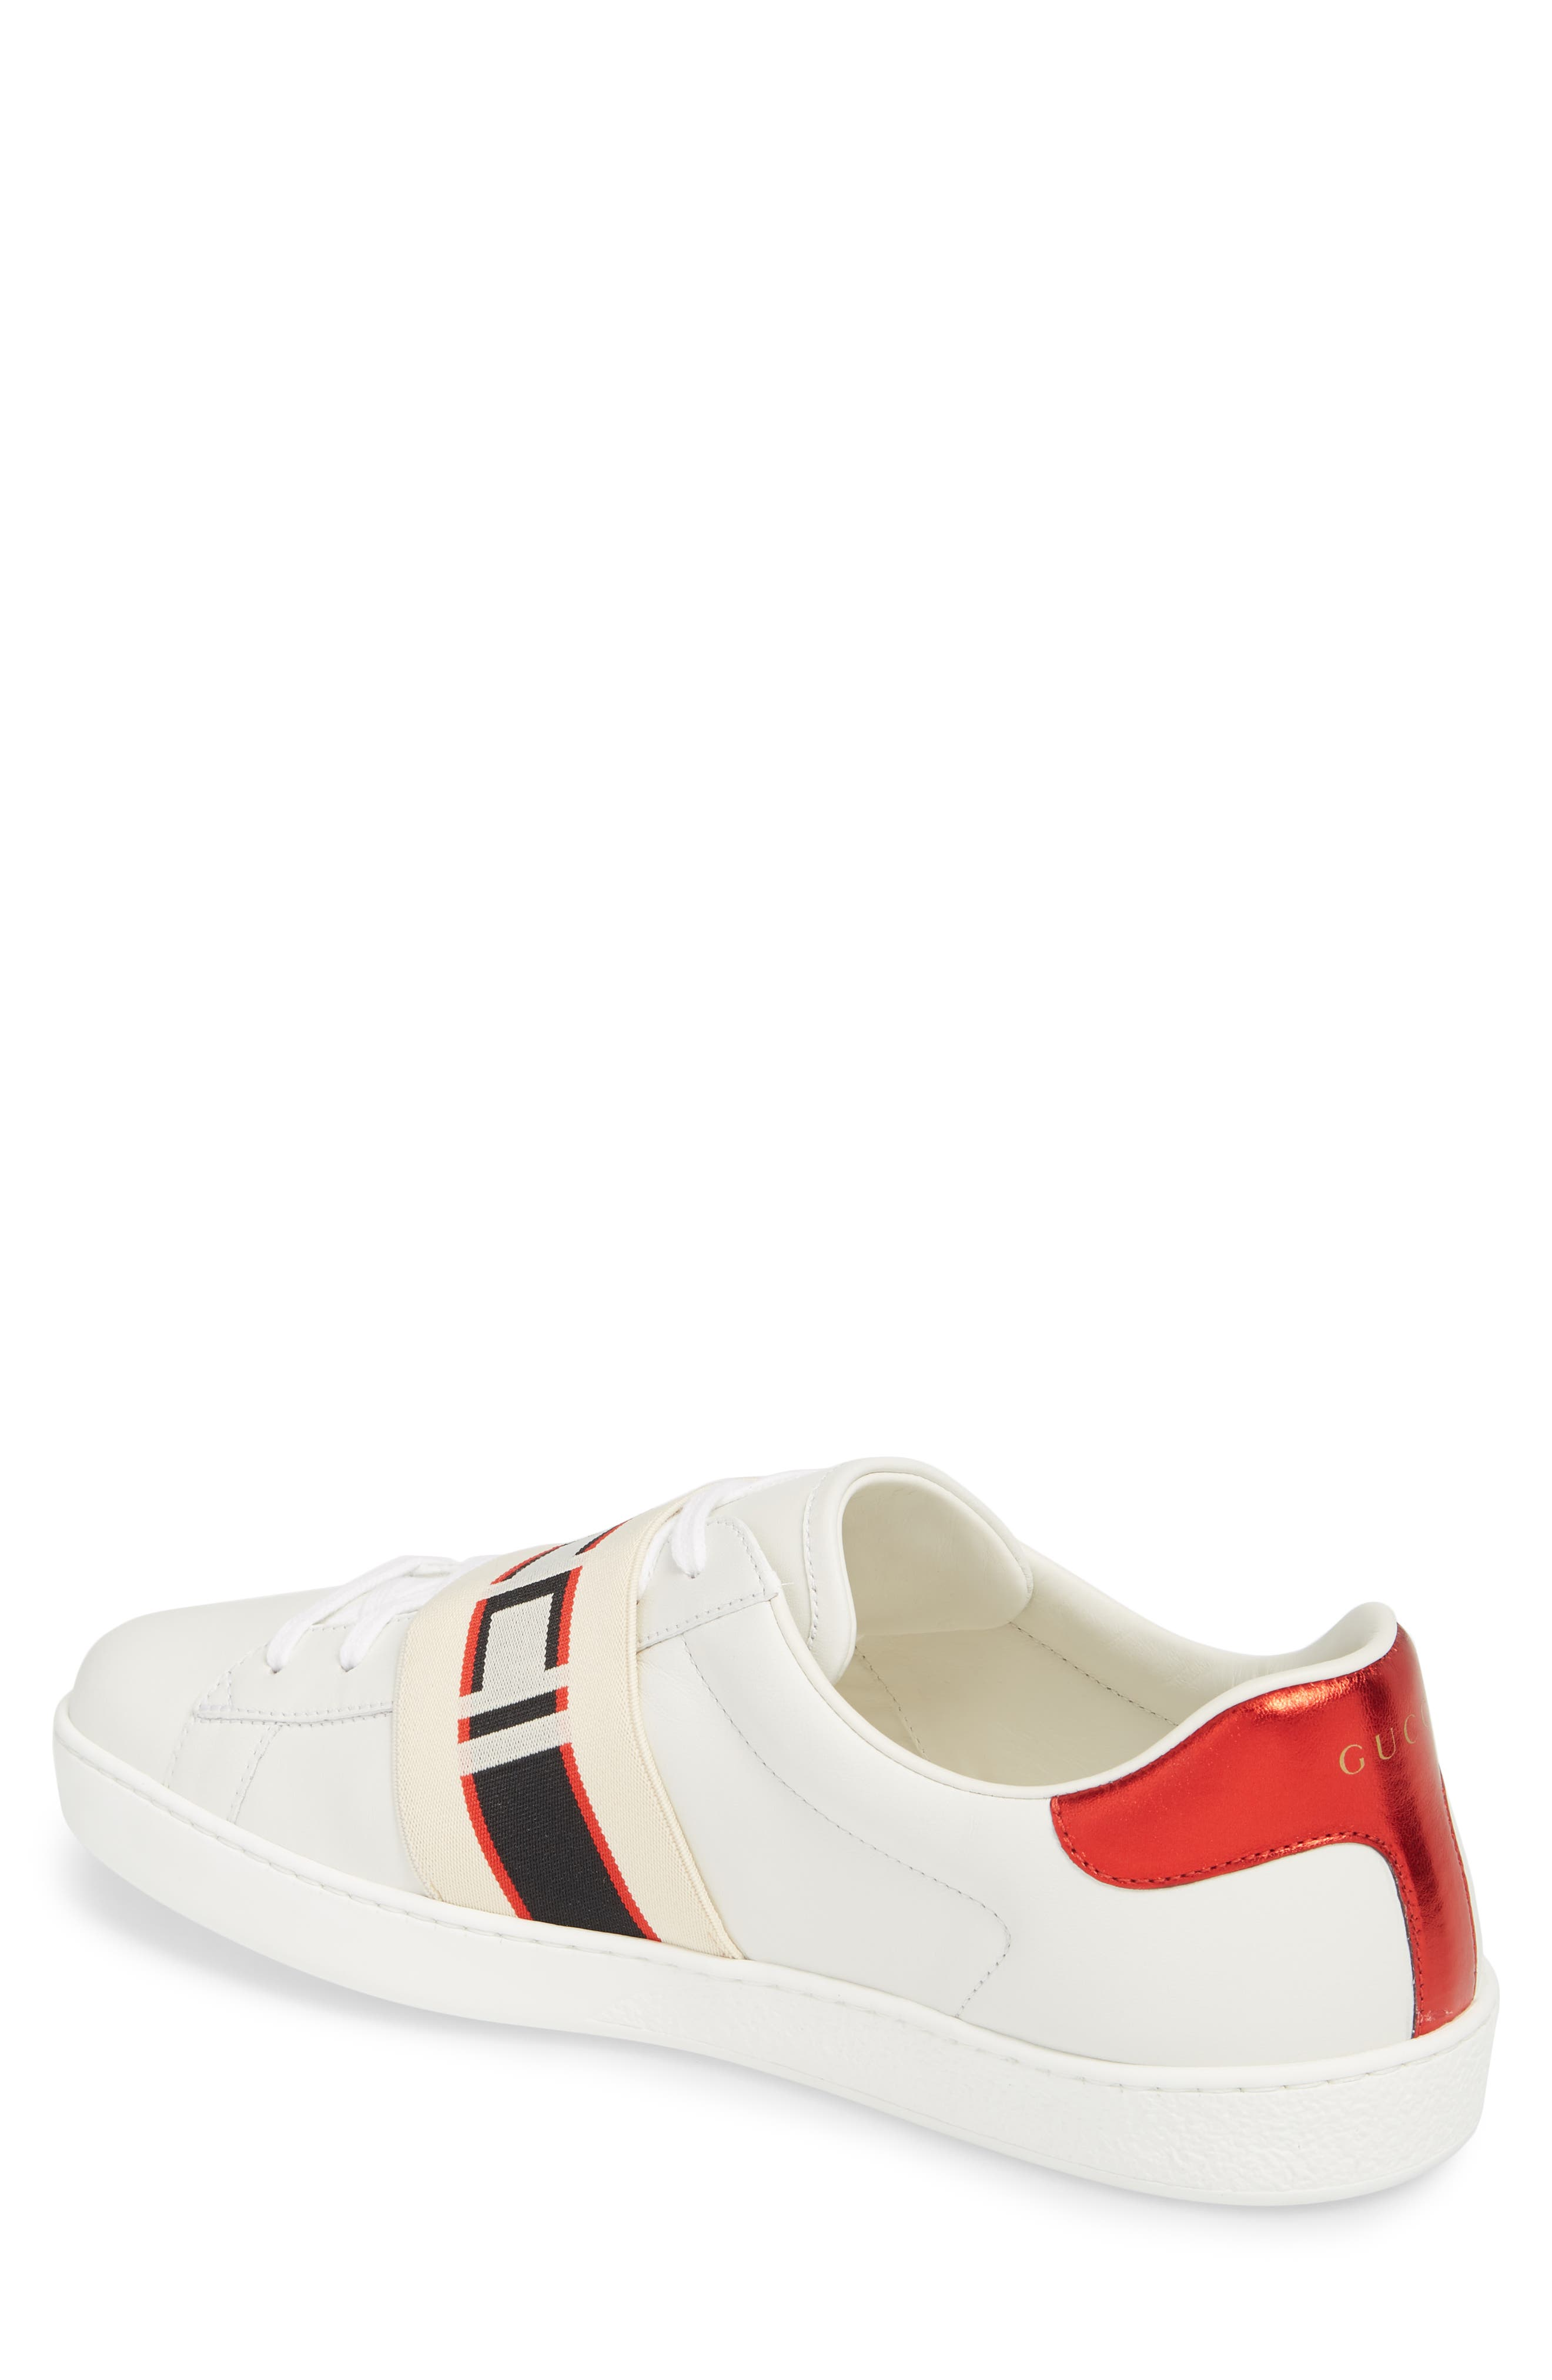 New Ace Stripe Leather Sneaker,                             Alternate thumbnail 2, color,                             BIANCO/ WHITE FLAME